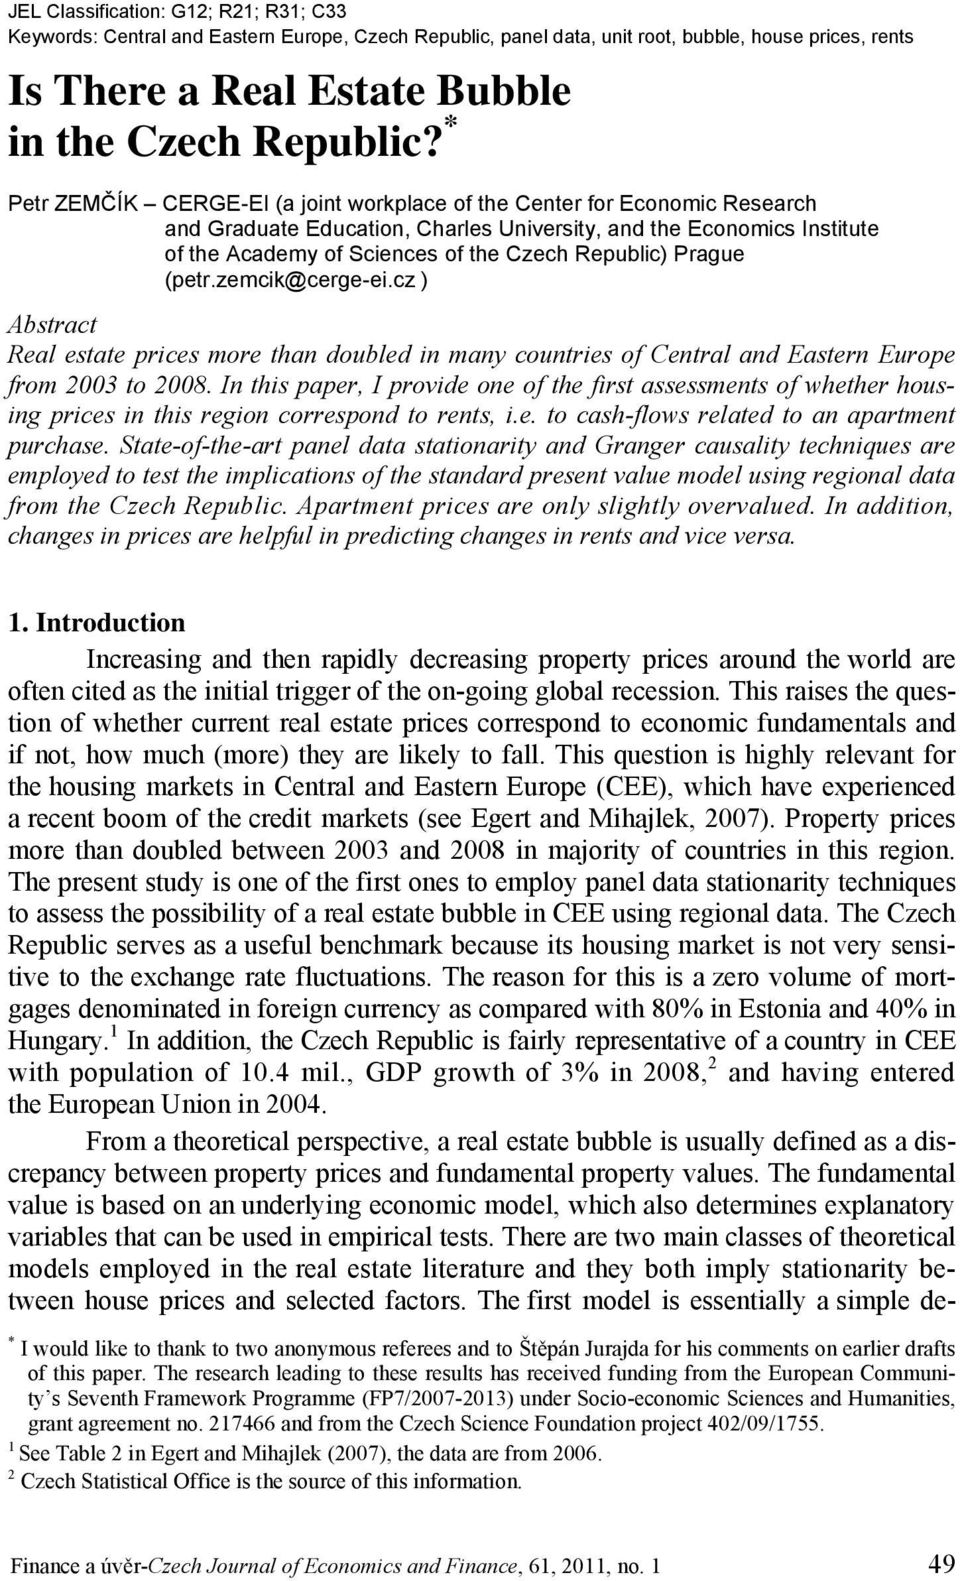 Prague (petr.zemcik@cerge-ei.cz ) Abstract Real estate prices more than doubled in many countries of Central and Eastern Europe from 2003 to 2008.